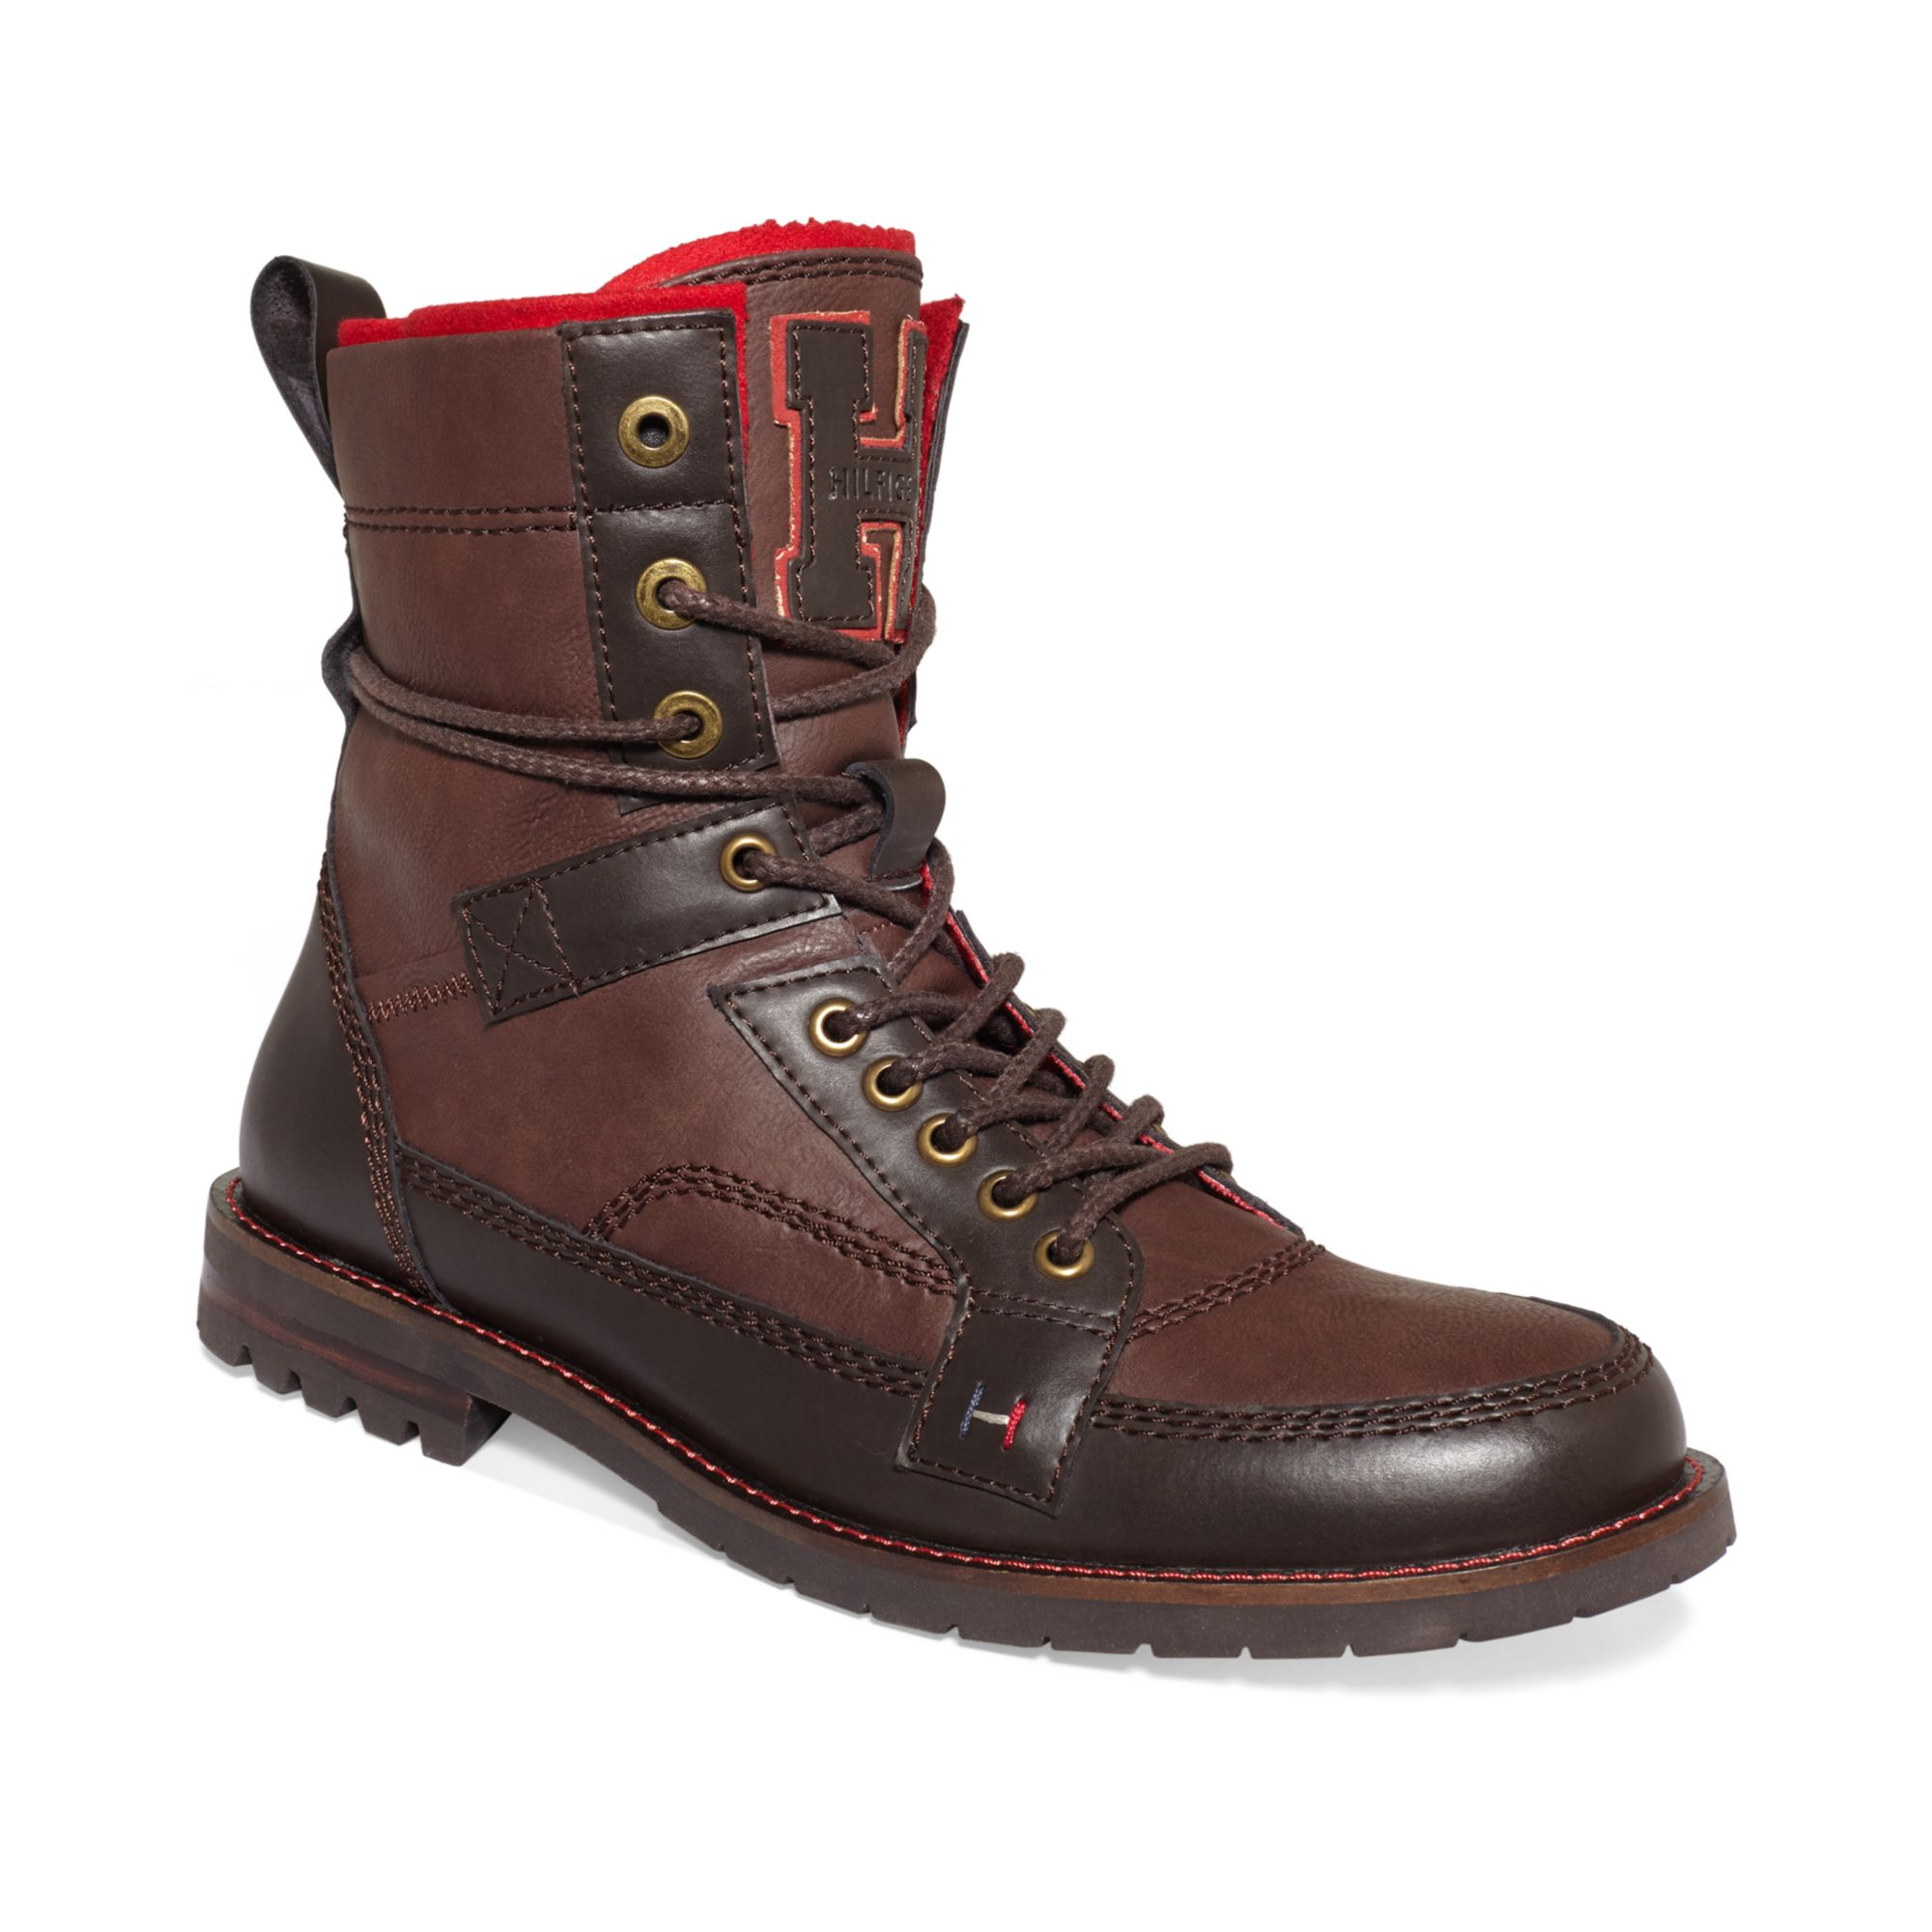 tommy hilfiger brutus boots in brown for men iroko red. Black Bedroom Furniture Sets. Home Design Ideas